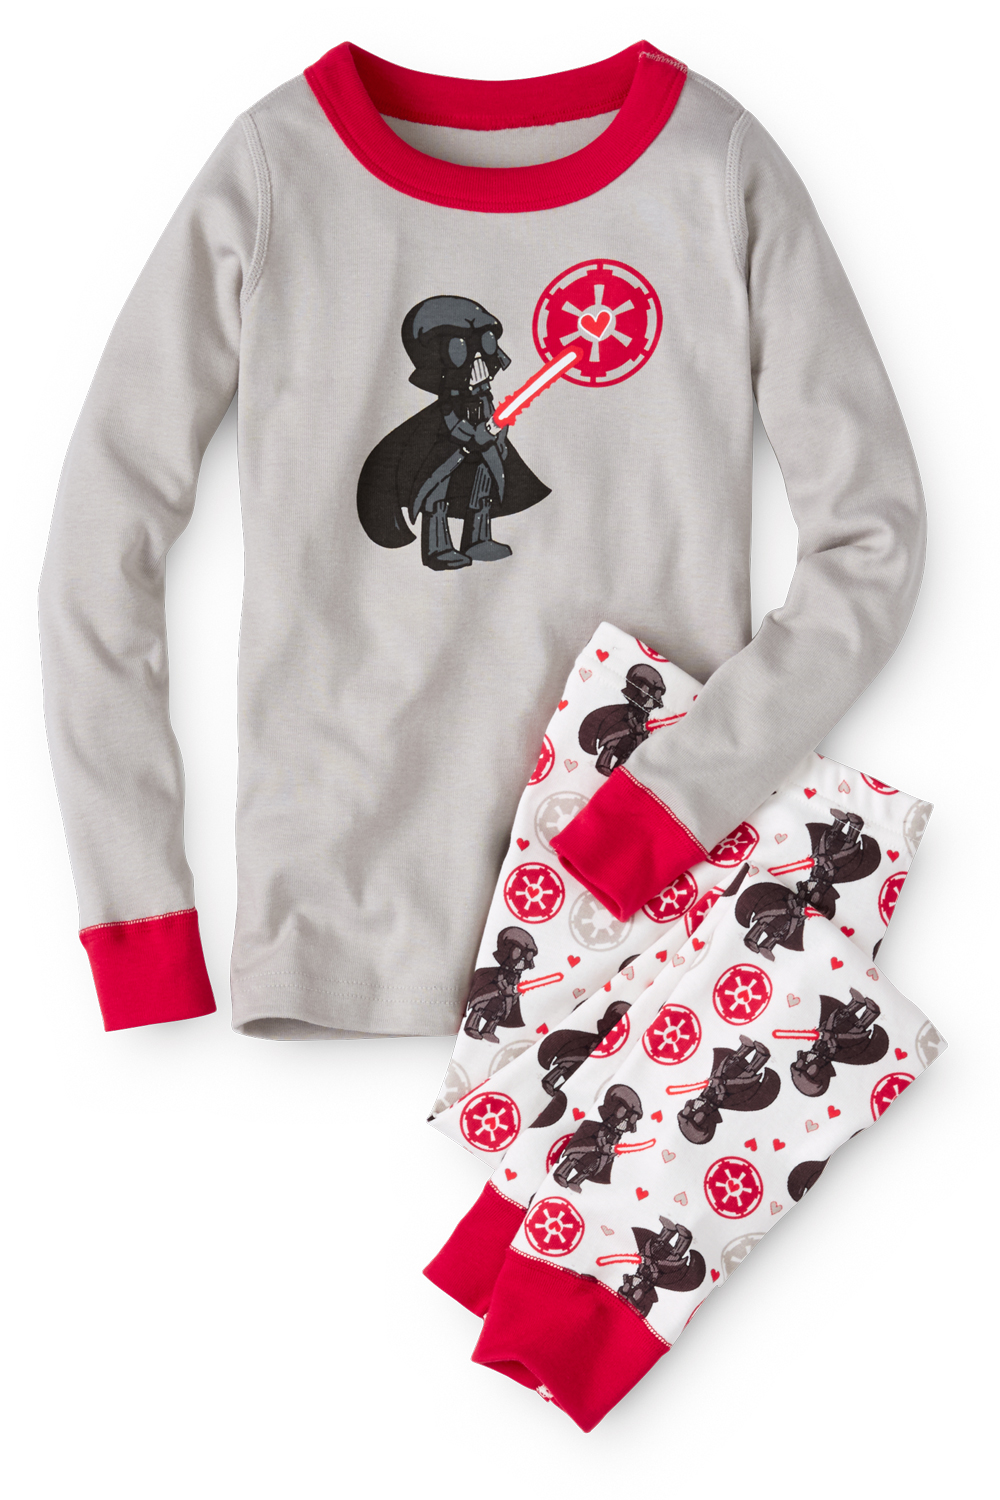 Valentine Star Wars Kids Pajamas in Organic Cotton